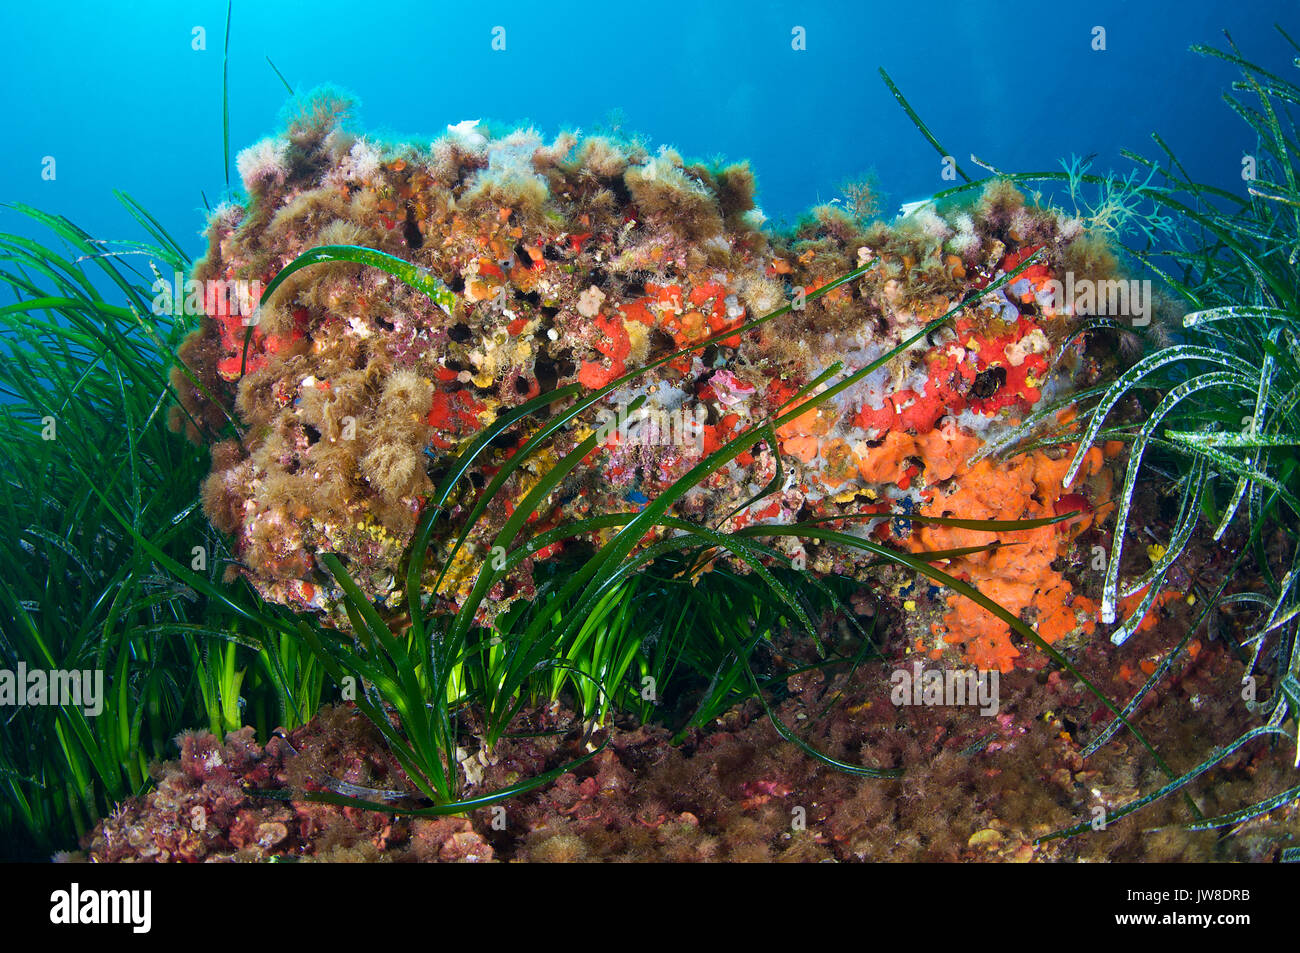 Curious reef formation lies between neptune seagrass (Posidonia oceanic) meadows at Ses Salines Natural Park (Formentera, Balearic Islands, Spain) - Stock Image